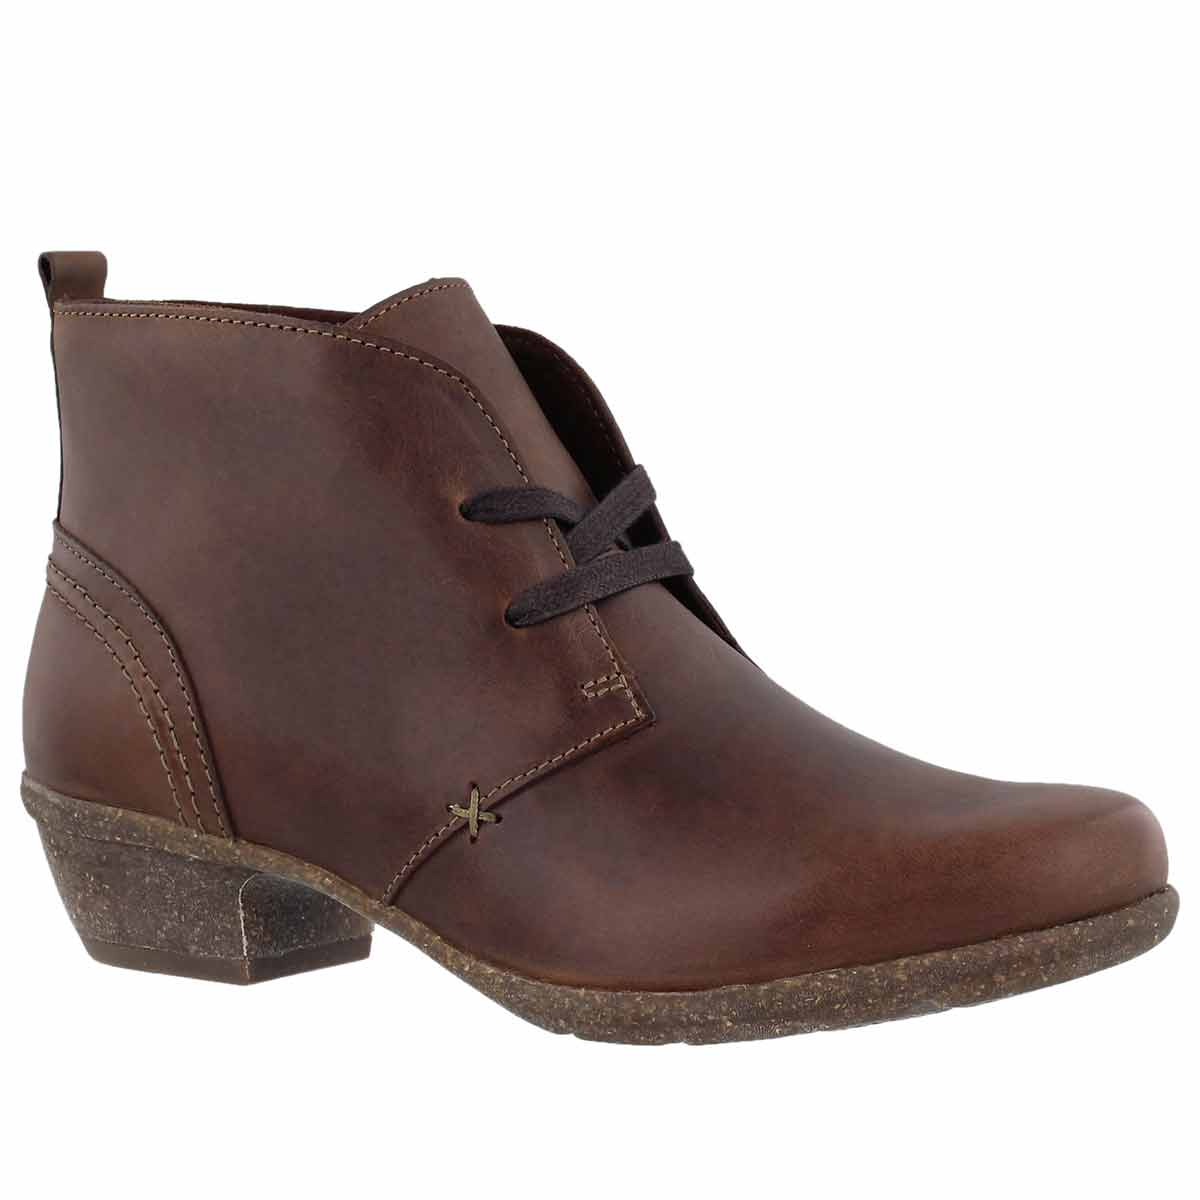 Women's WILROSE SAGE brown lace up booties